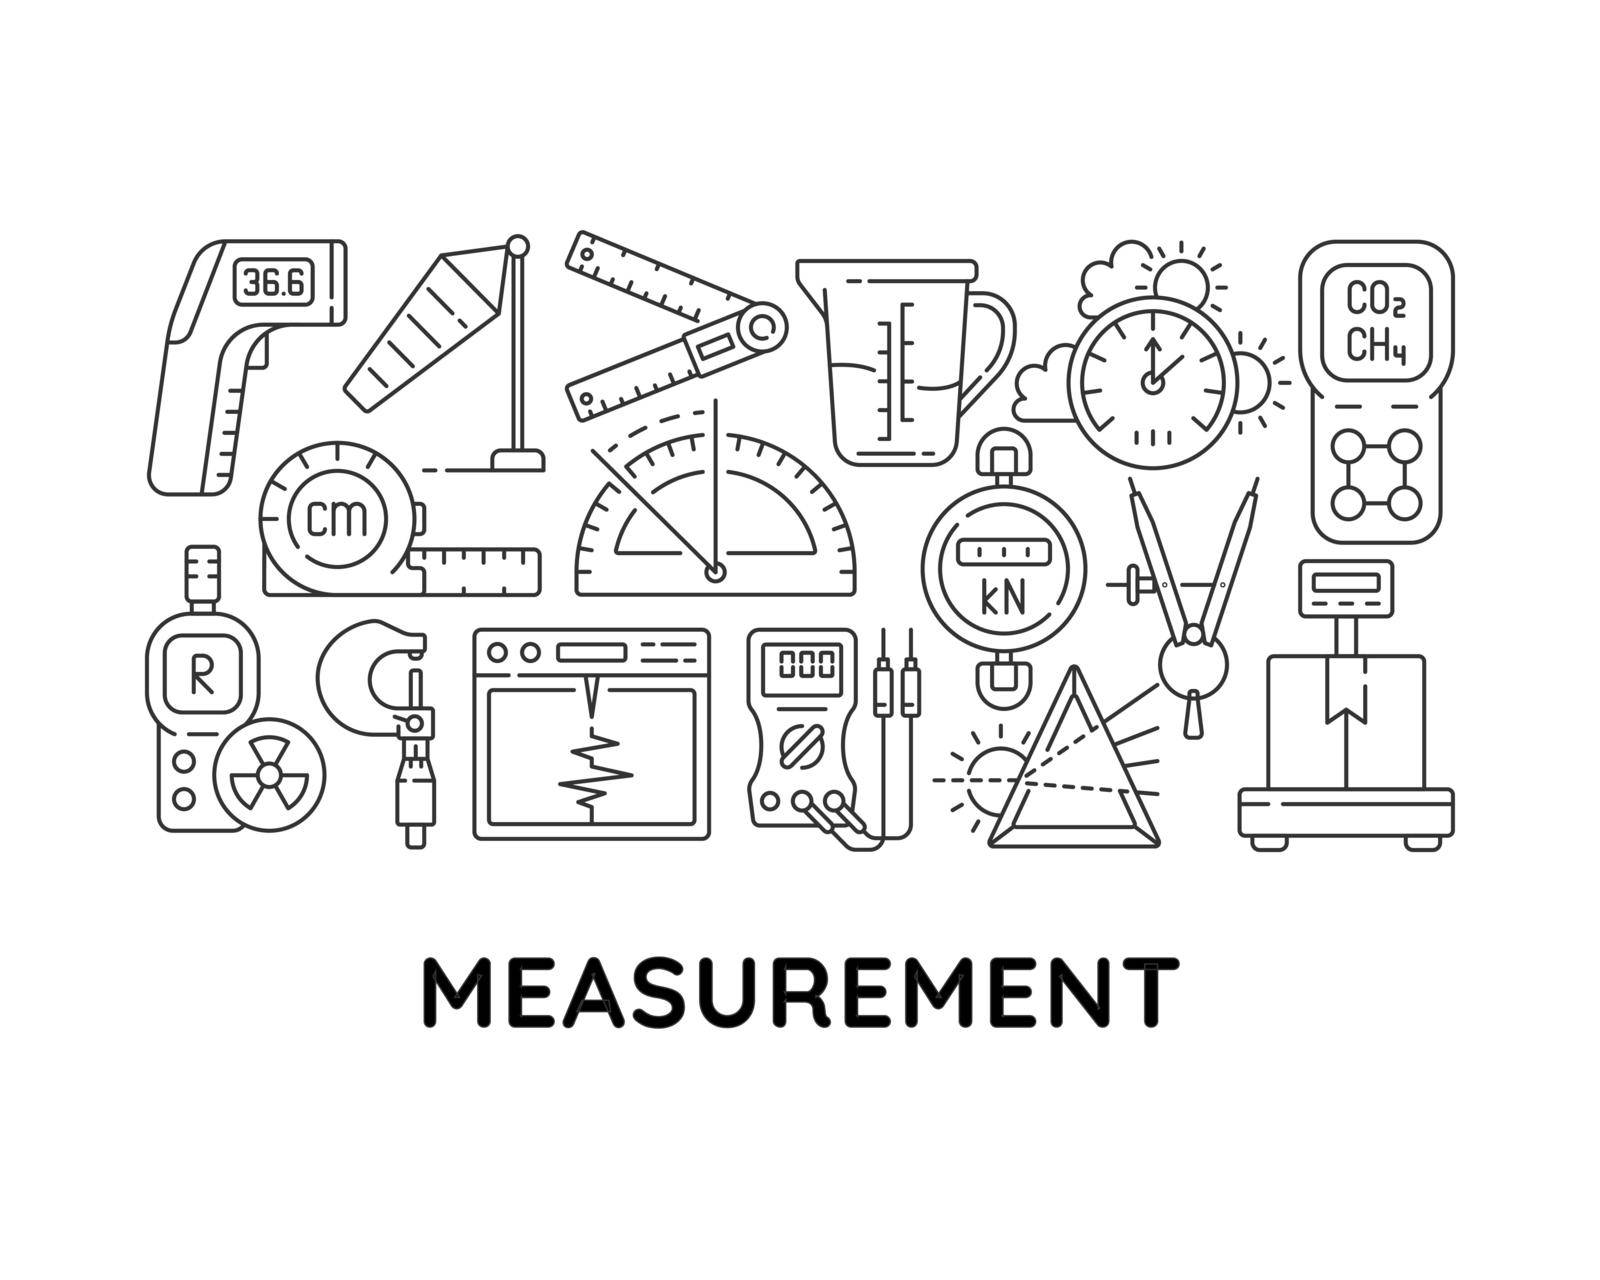 Measurement tools abstract linear concept layout with headline. Devices for measuring minimalistic idea. Weight, length check thin line graphic drawings. Isolated vector contour icons for background